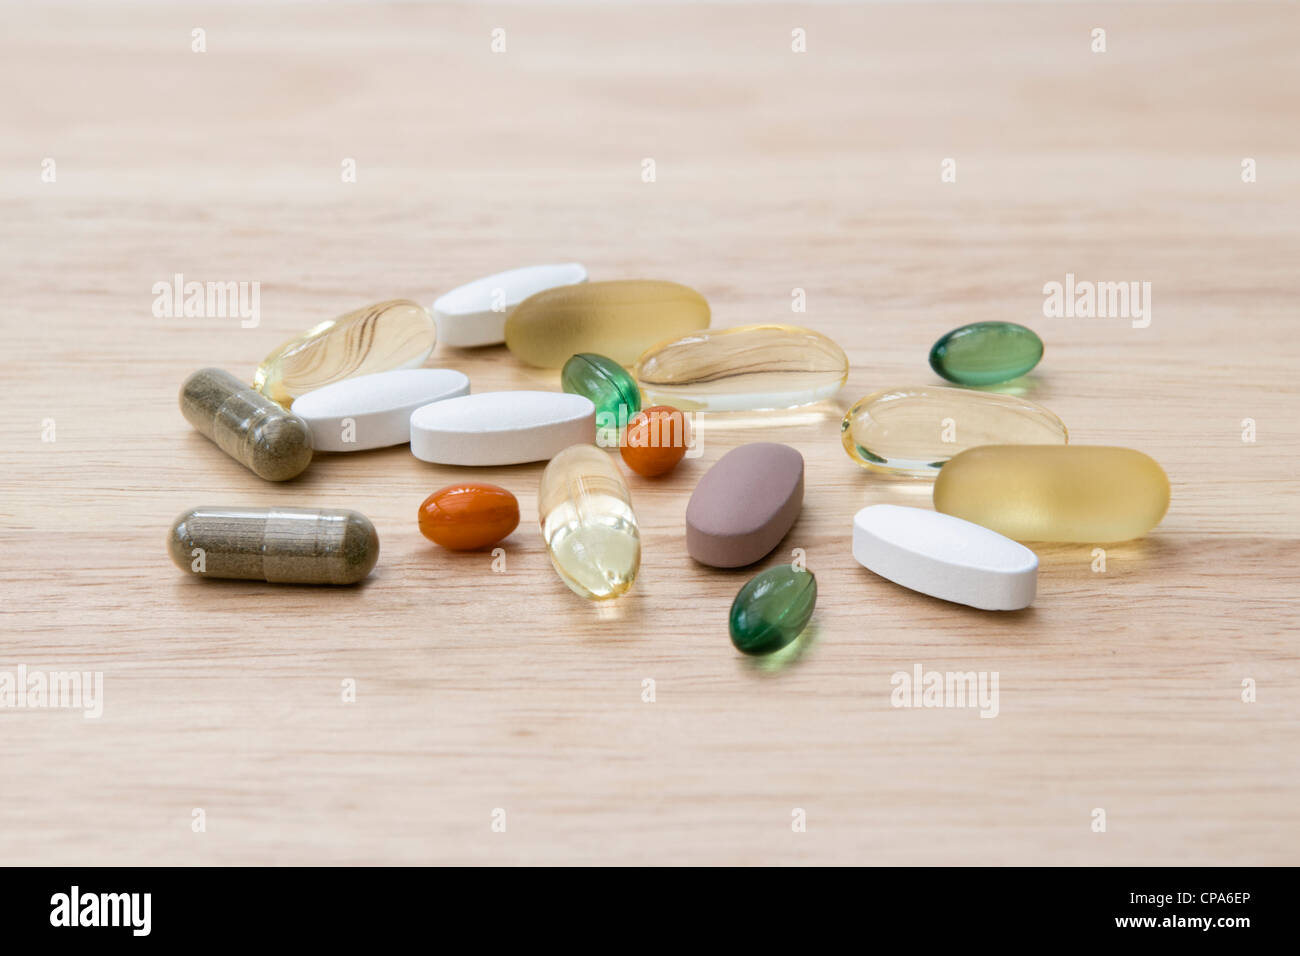 Selection of vitamin supplements (omega 3, Co-enzyme Q10, peppermint, chondroitin, ginkgo and ginseng) on chopping - Stock Image